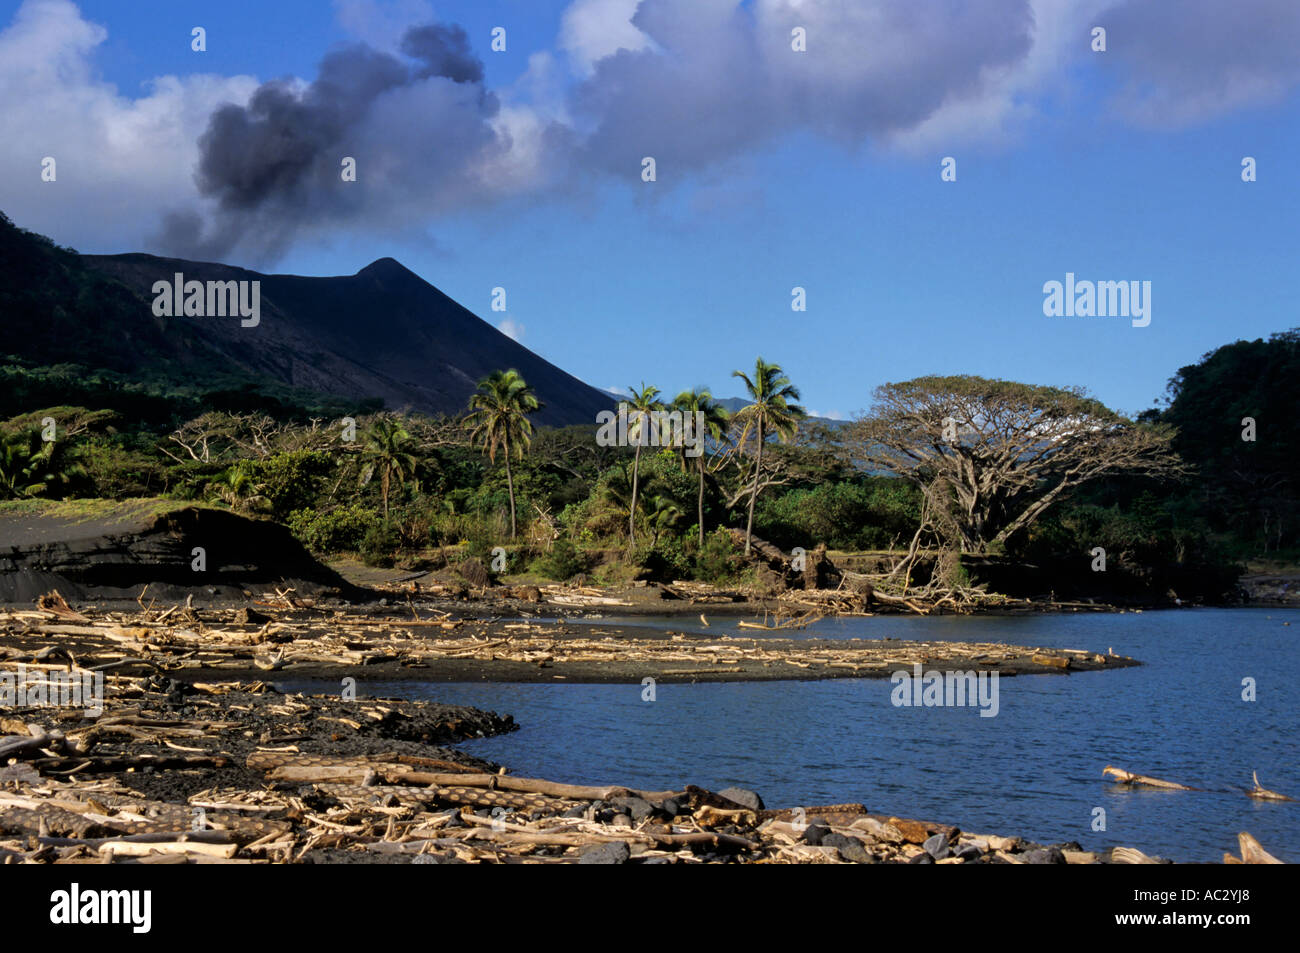 Hot springs lake and Yasur Volcano at Sulphur Bay Village, Ipekel Ipeukel, Tanna Island, Vanuatu. - Stock Image